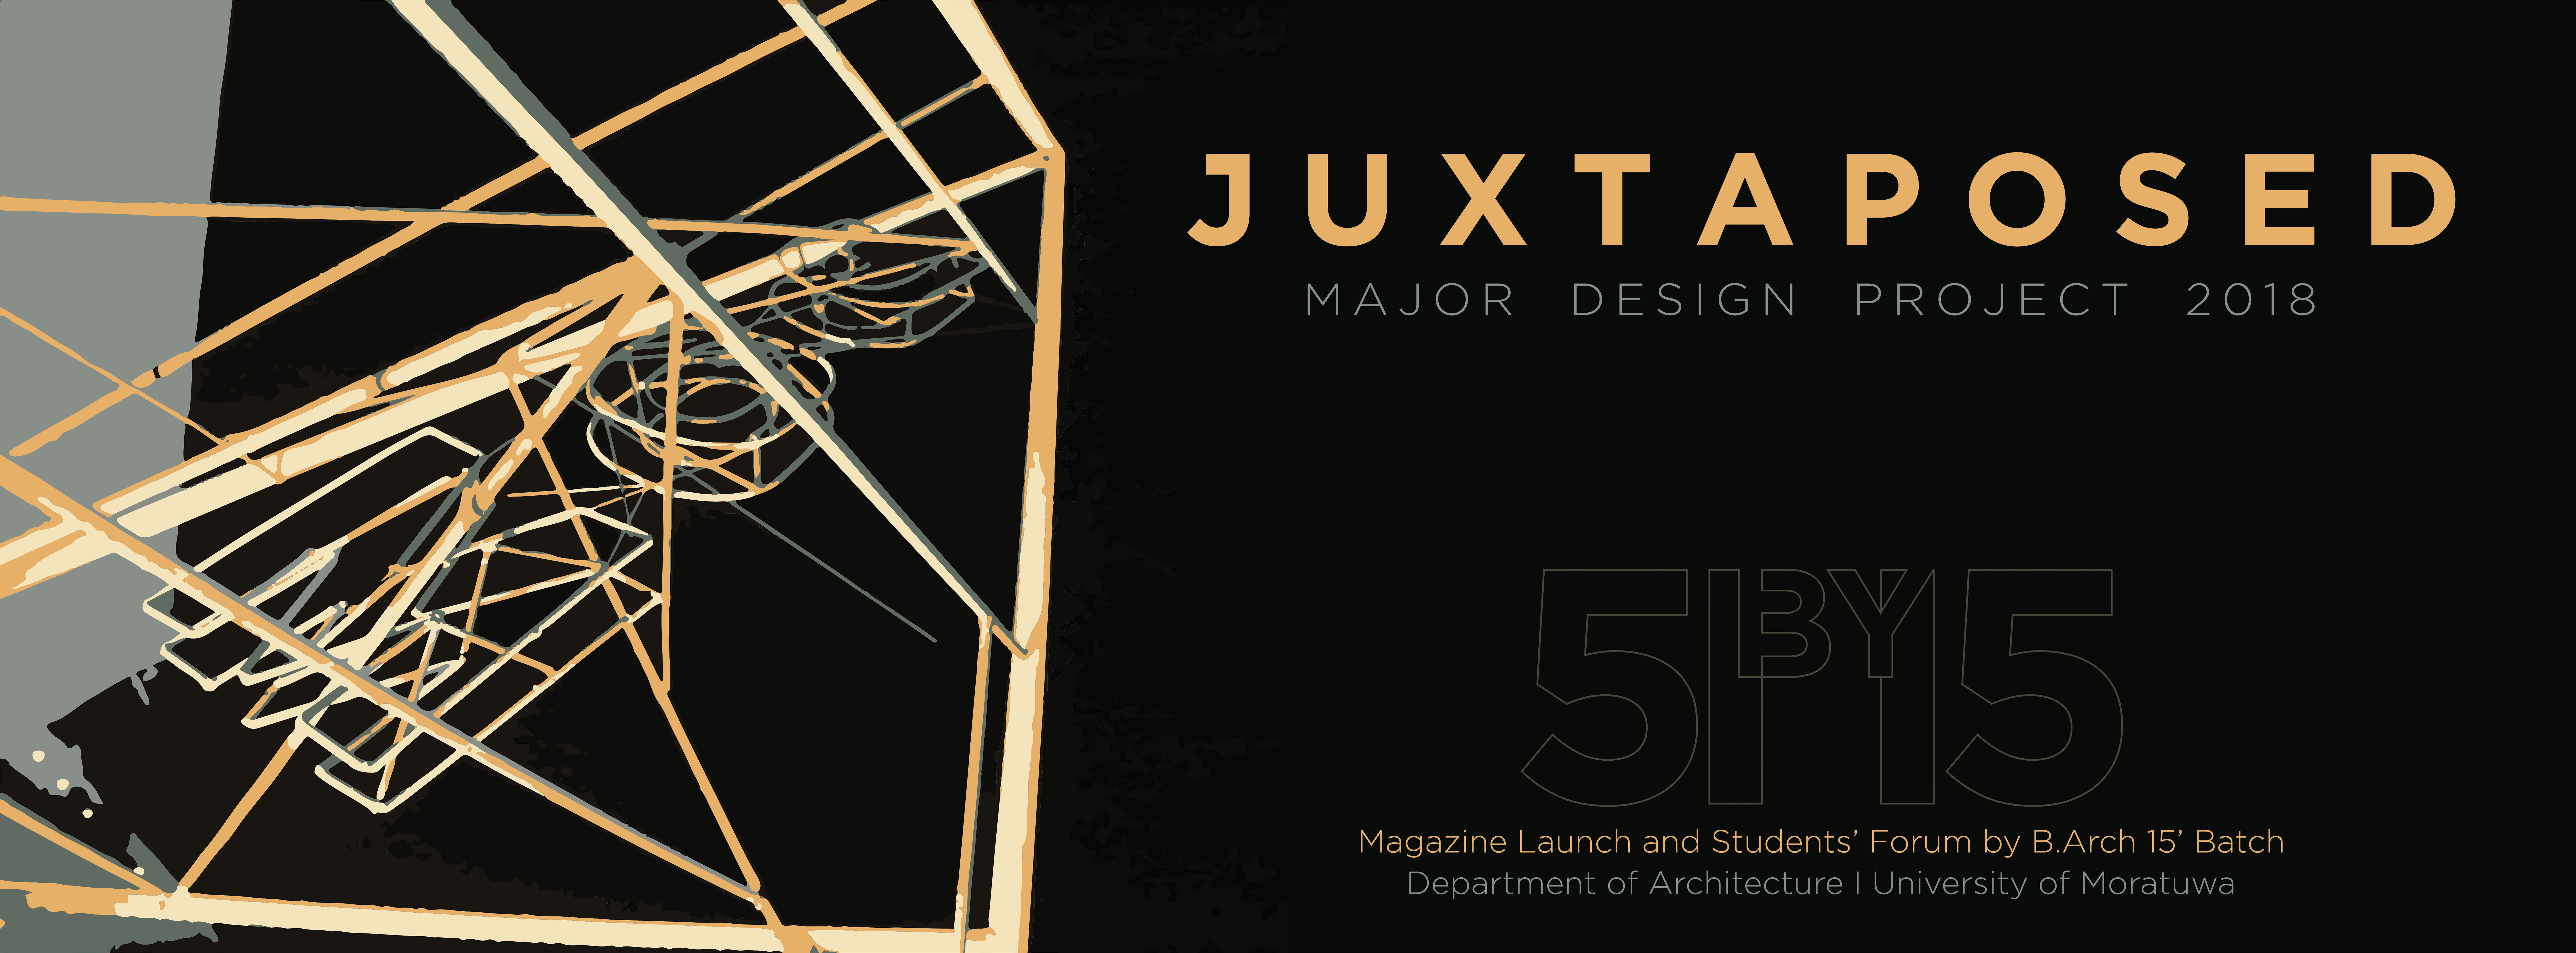 JUXTAPOSED-Magazine launch on Major Design Project 2018 and Student Forum by B.Arch. 15' Batch